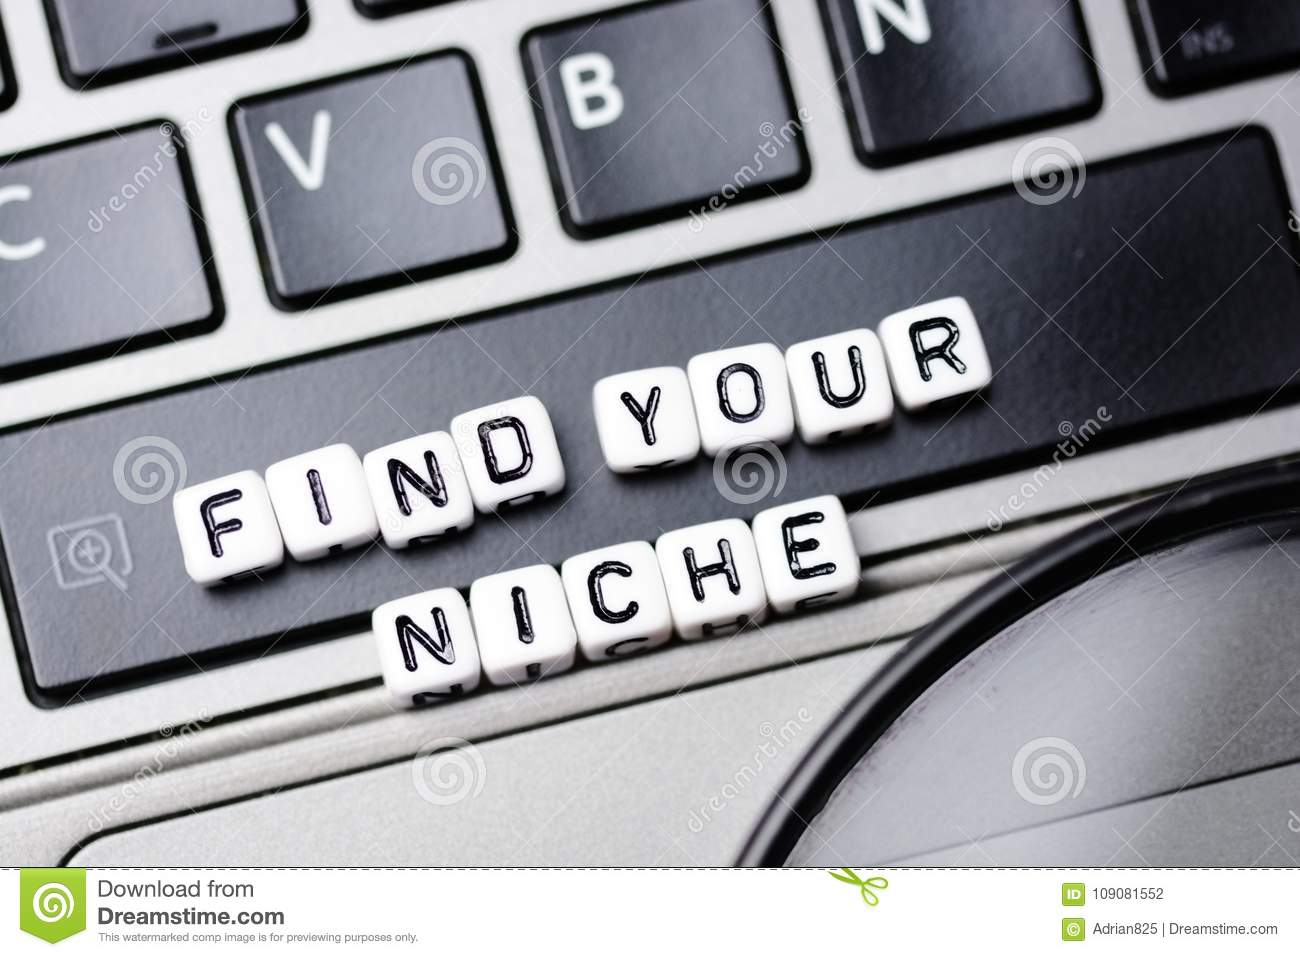 Find Your Niche Text With Small Letter Cubes On Laptop Keyboard